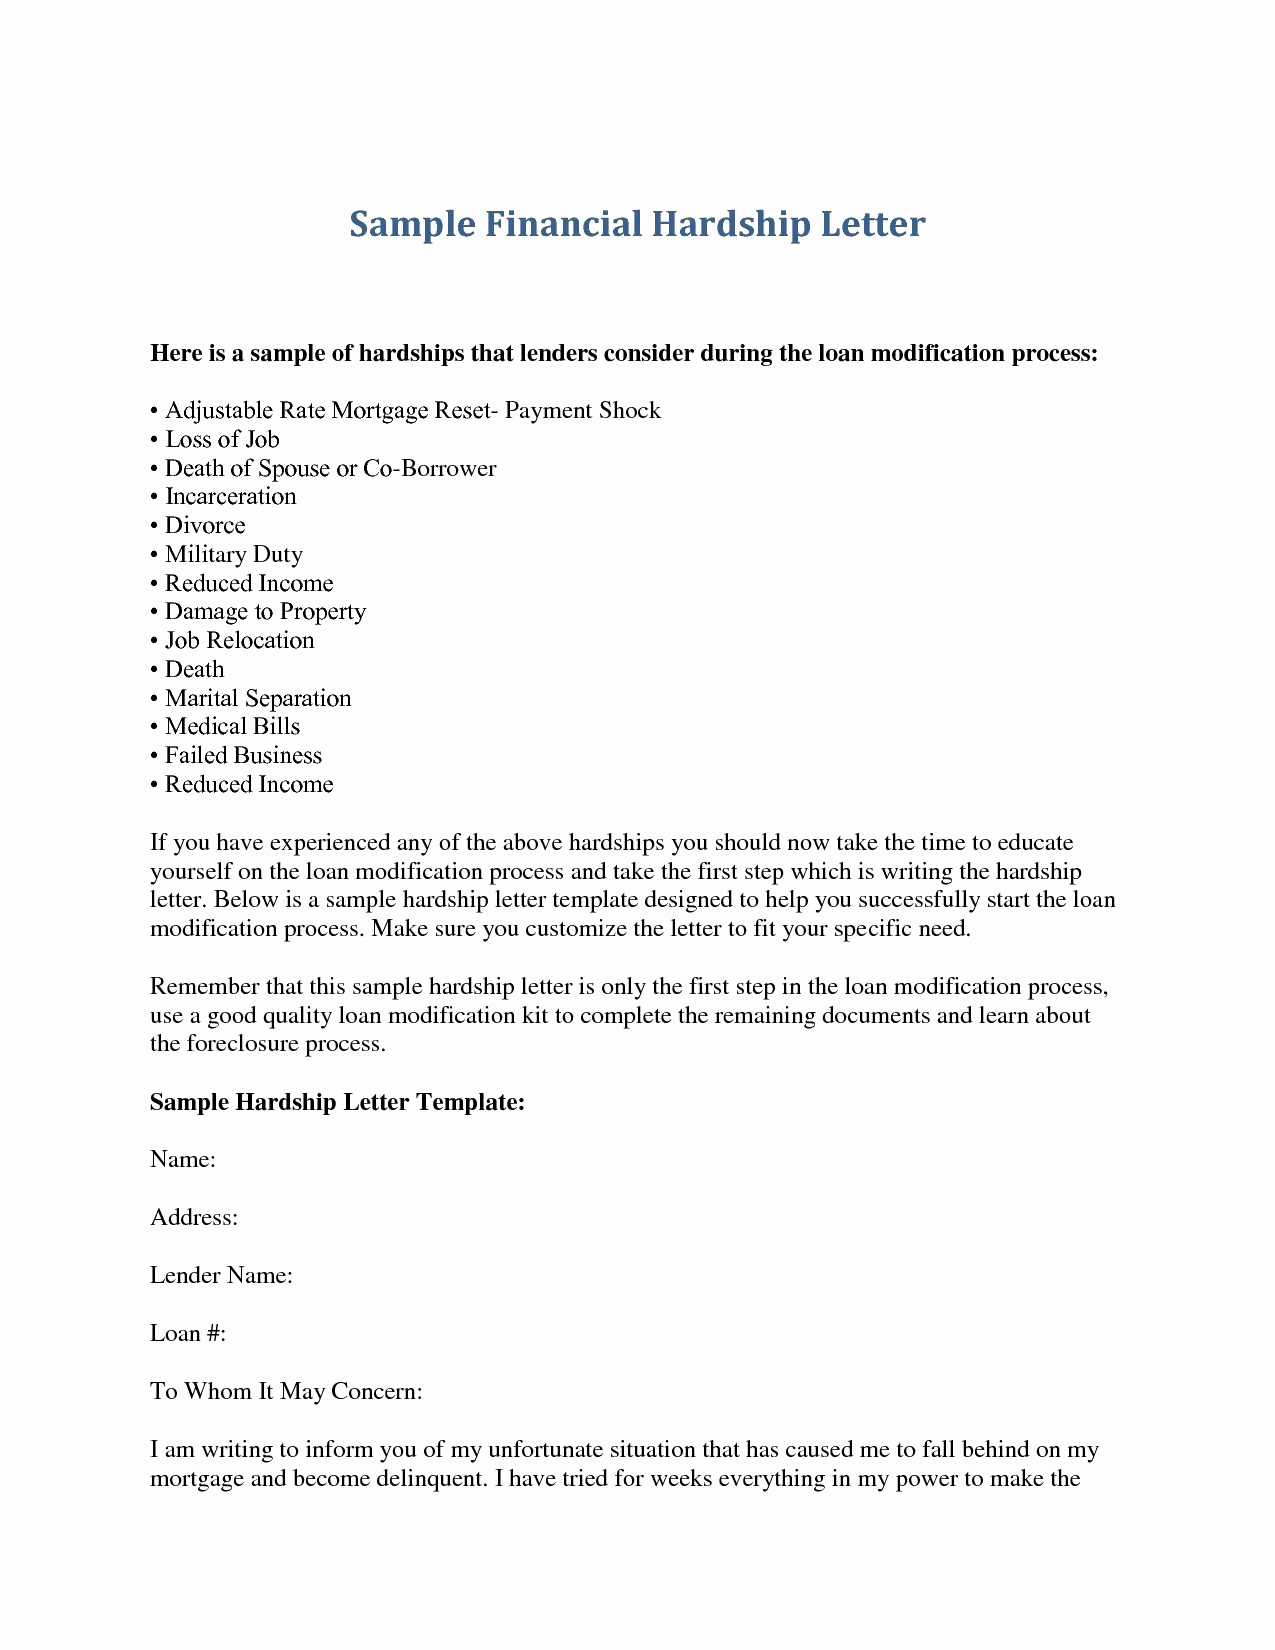 Mortgage hardship letter template collection letter templates mortgage hardship letter template expocarfo Images